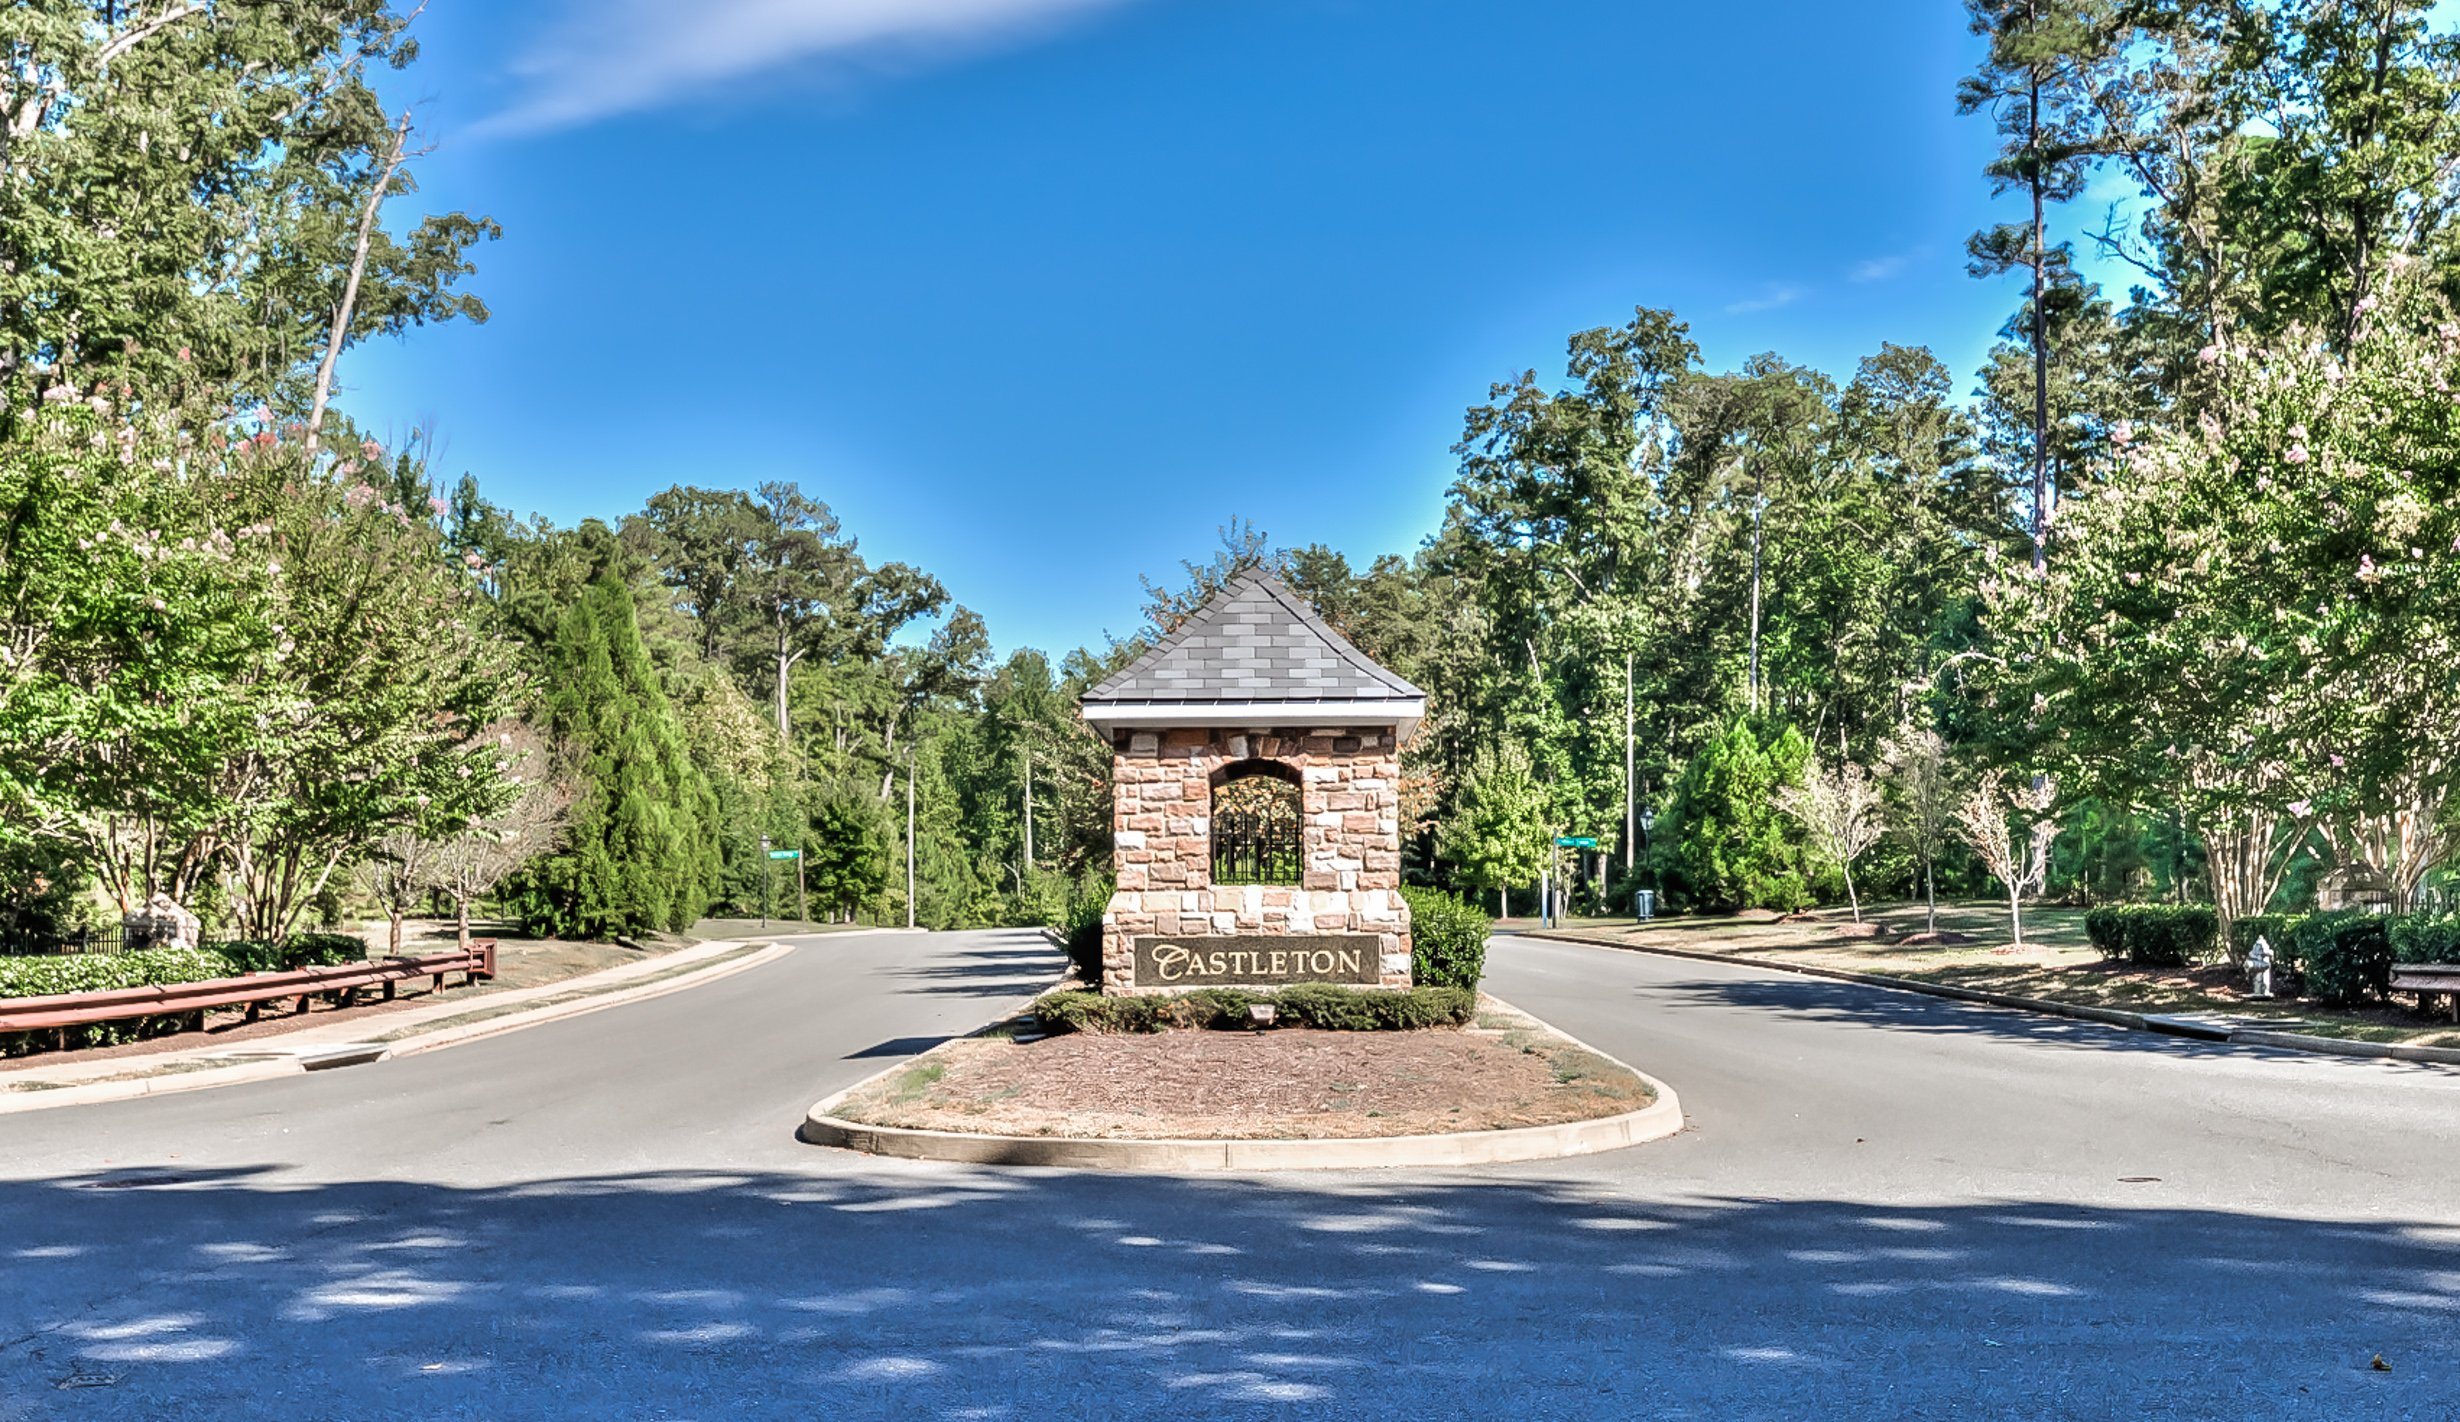 Castleton entrance in Henrico